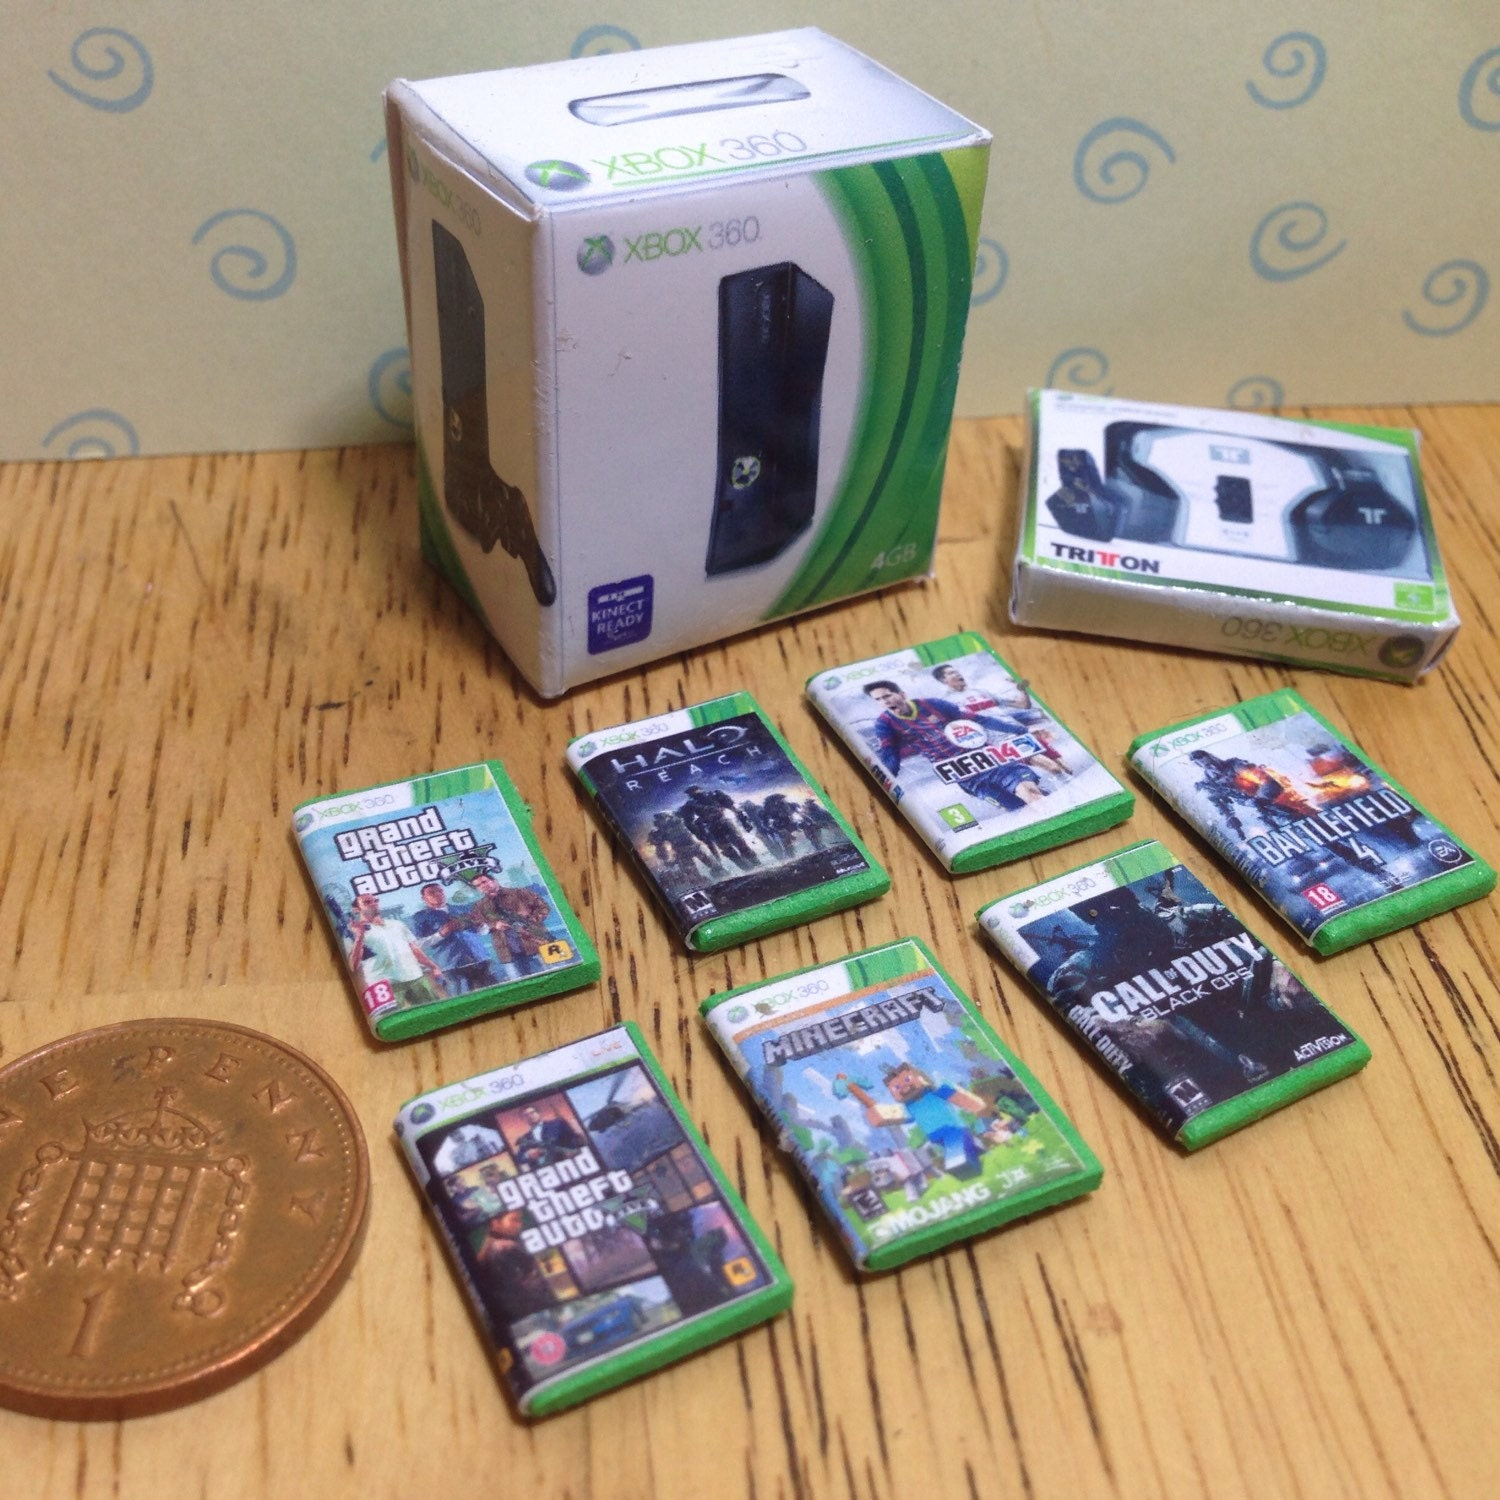 Dolls house handmade miniature xbox 360 bundle  console headphones and 7 games 112 scale